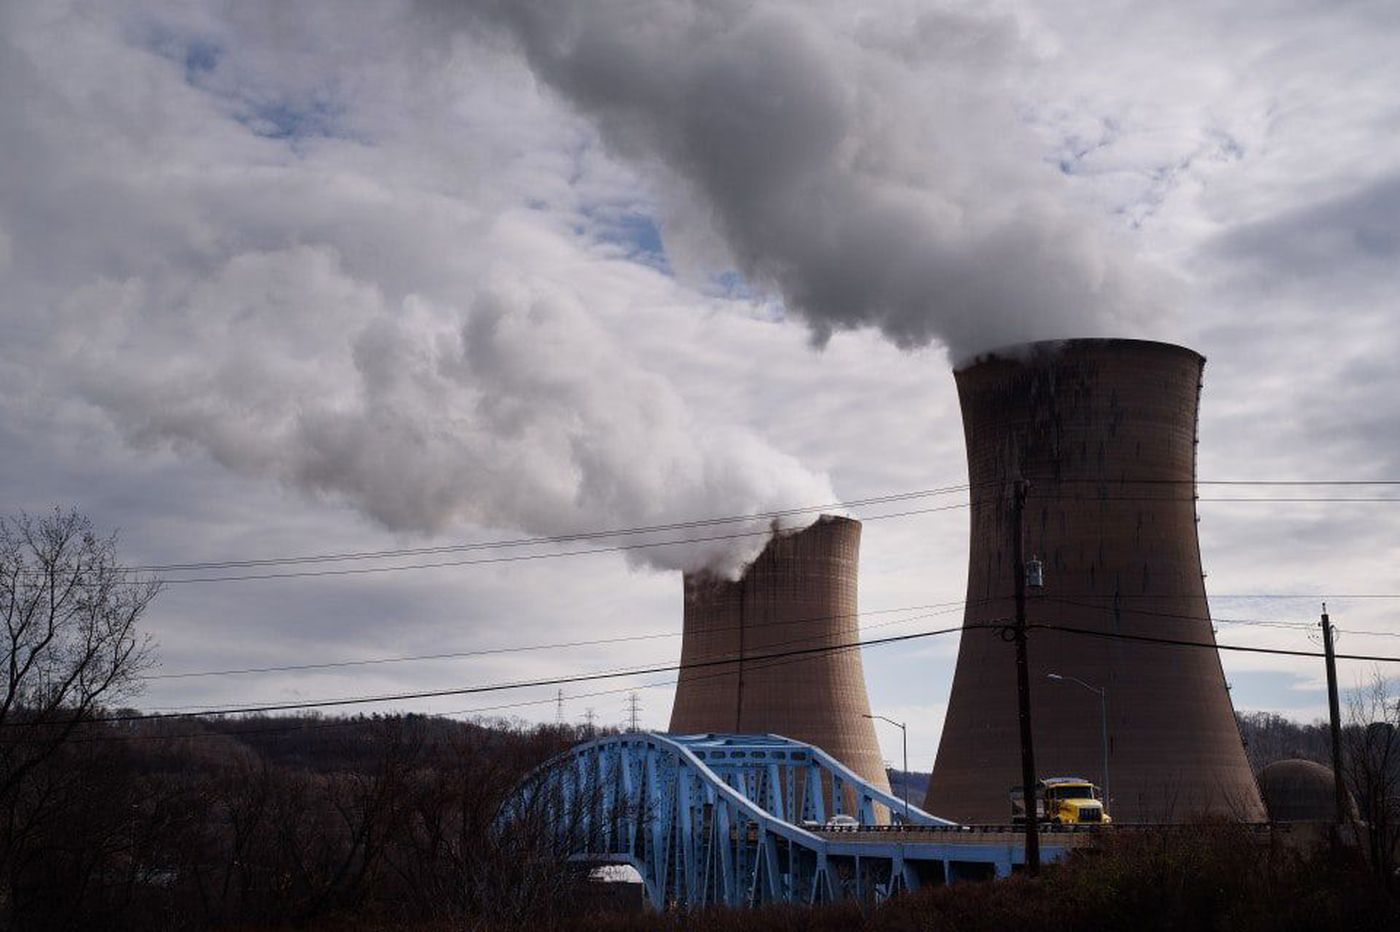 Three struggling nuclear plants in Pa., Ohio need federal rescue, company pleads